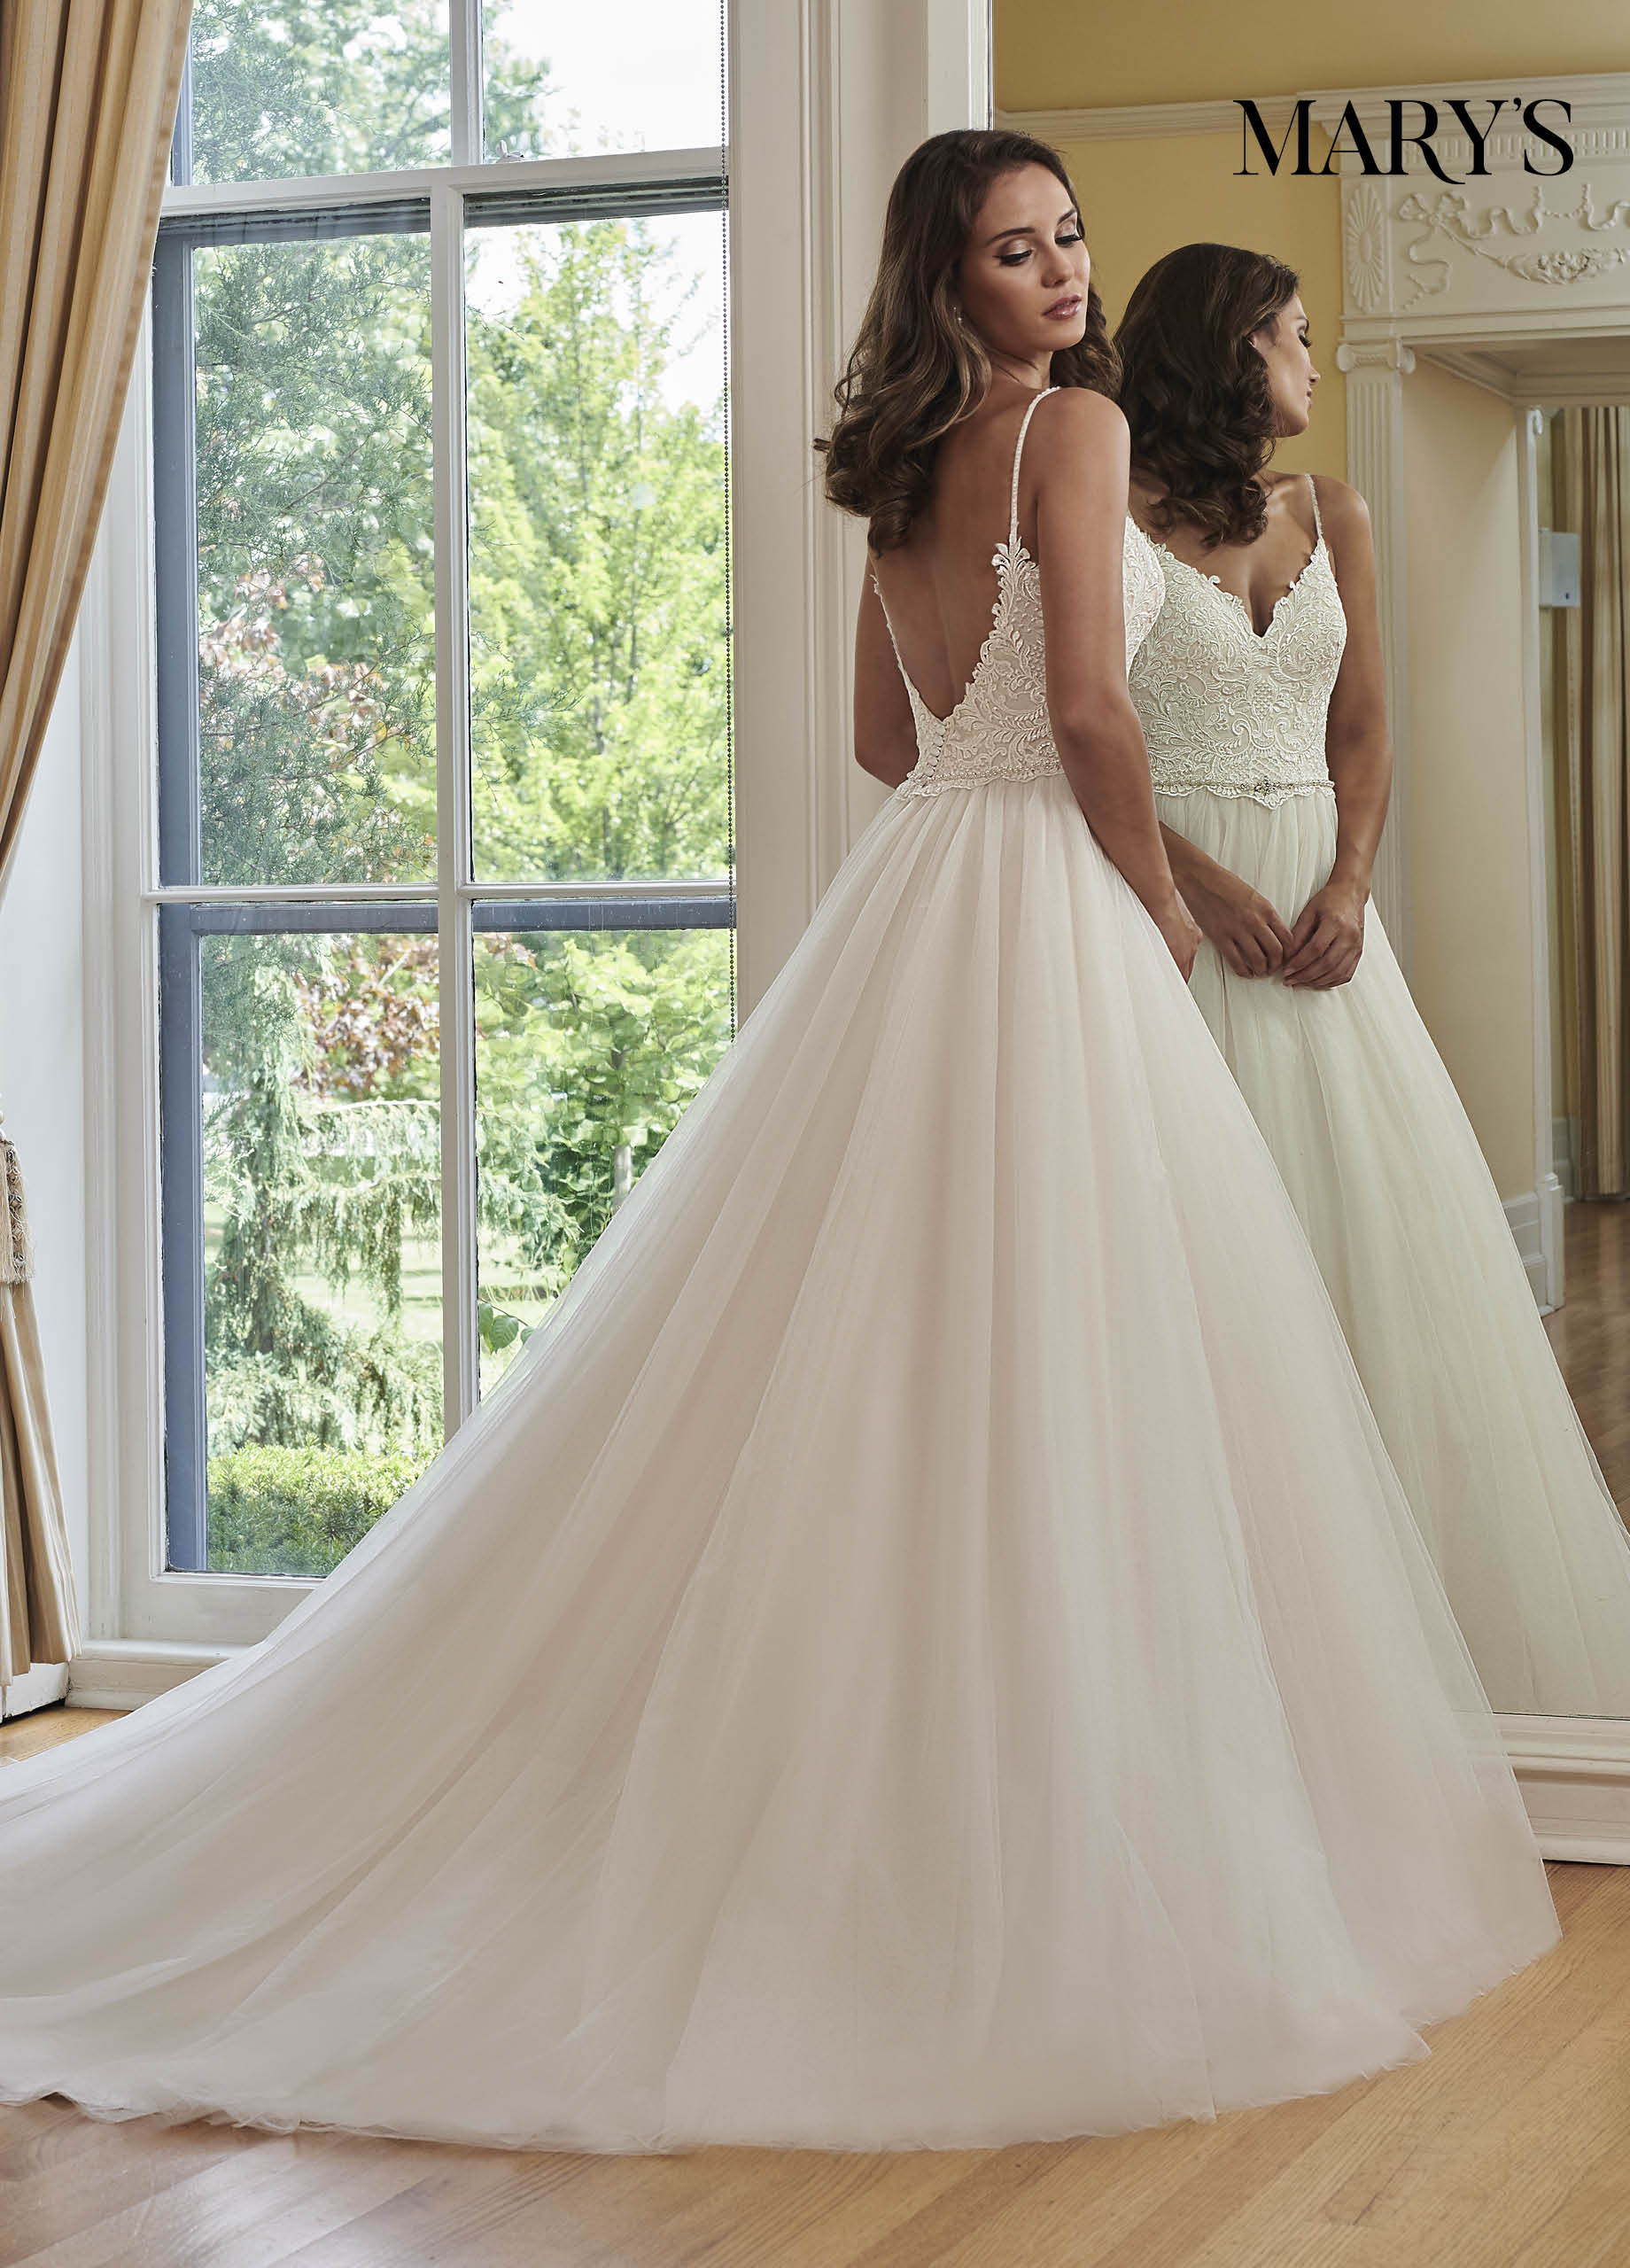 Bridal Wedding Dresses Mary's Style Mb3059: Natural Colored Wedding Dress At Websimilar.org